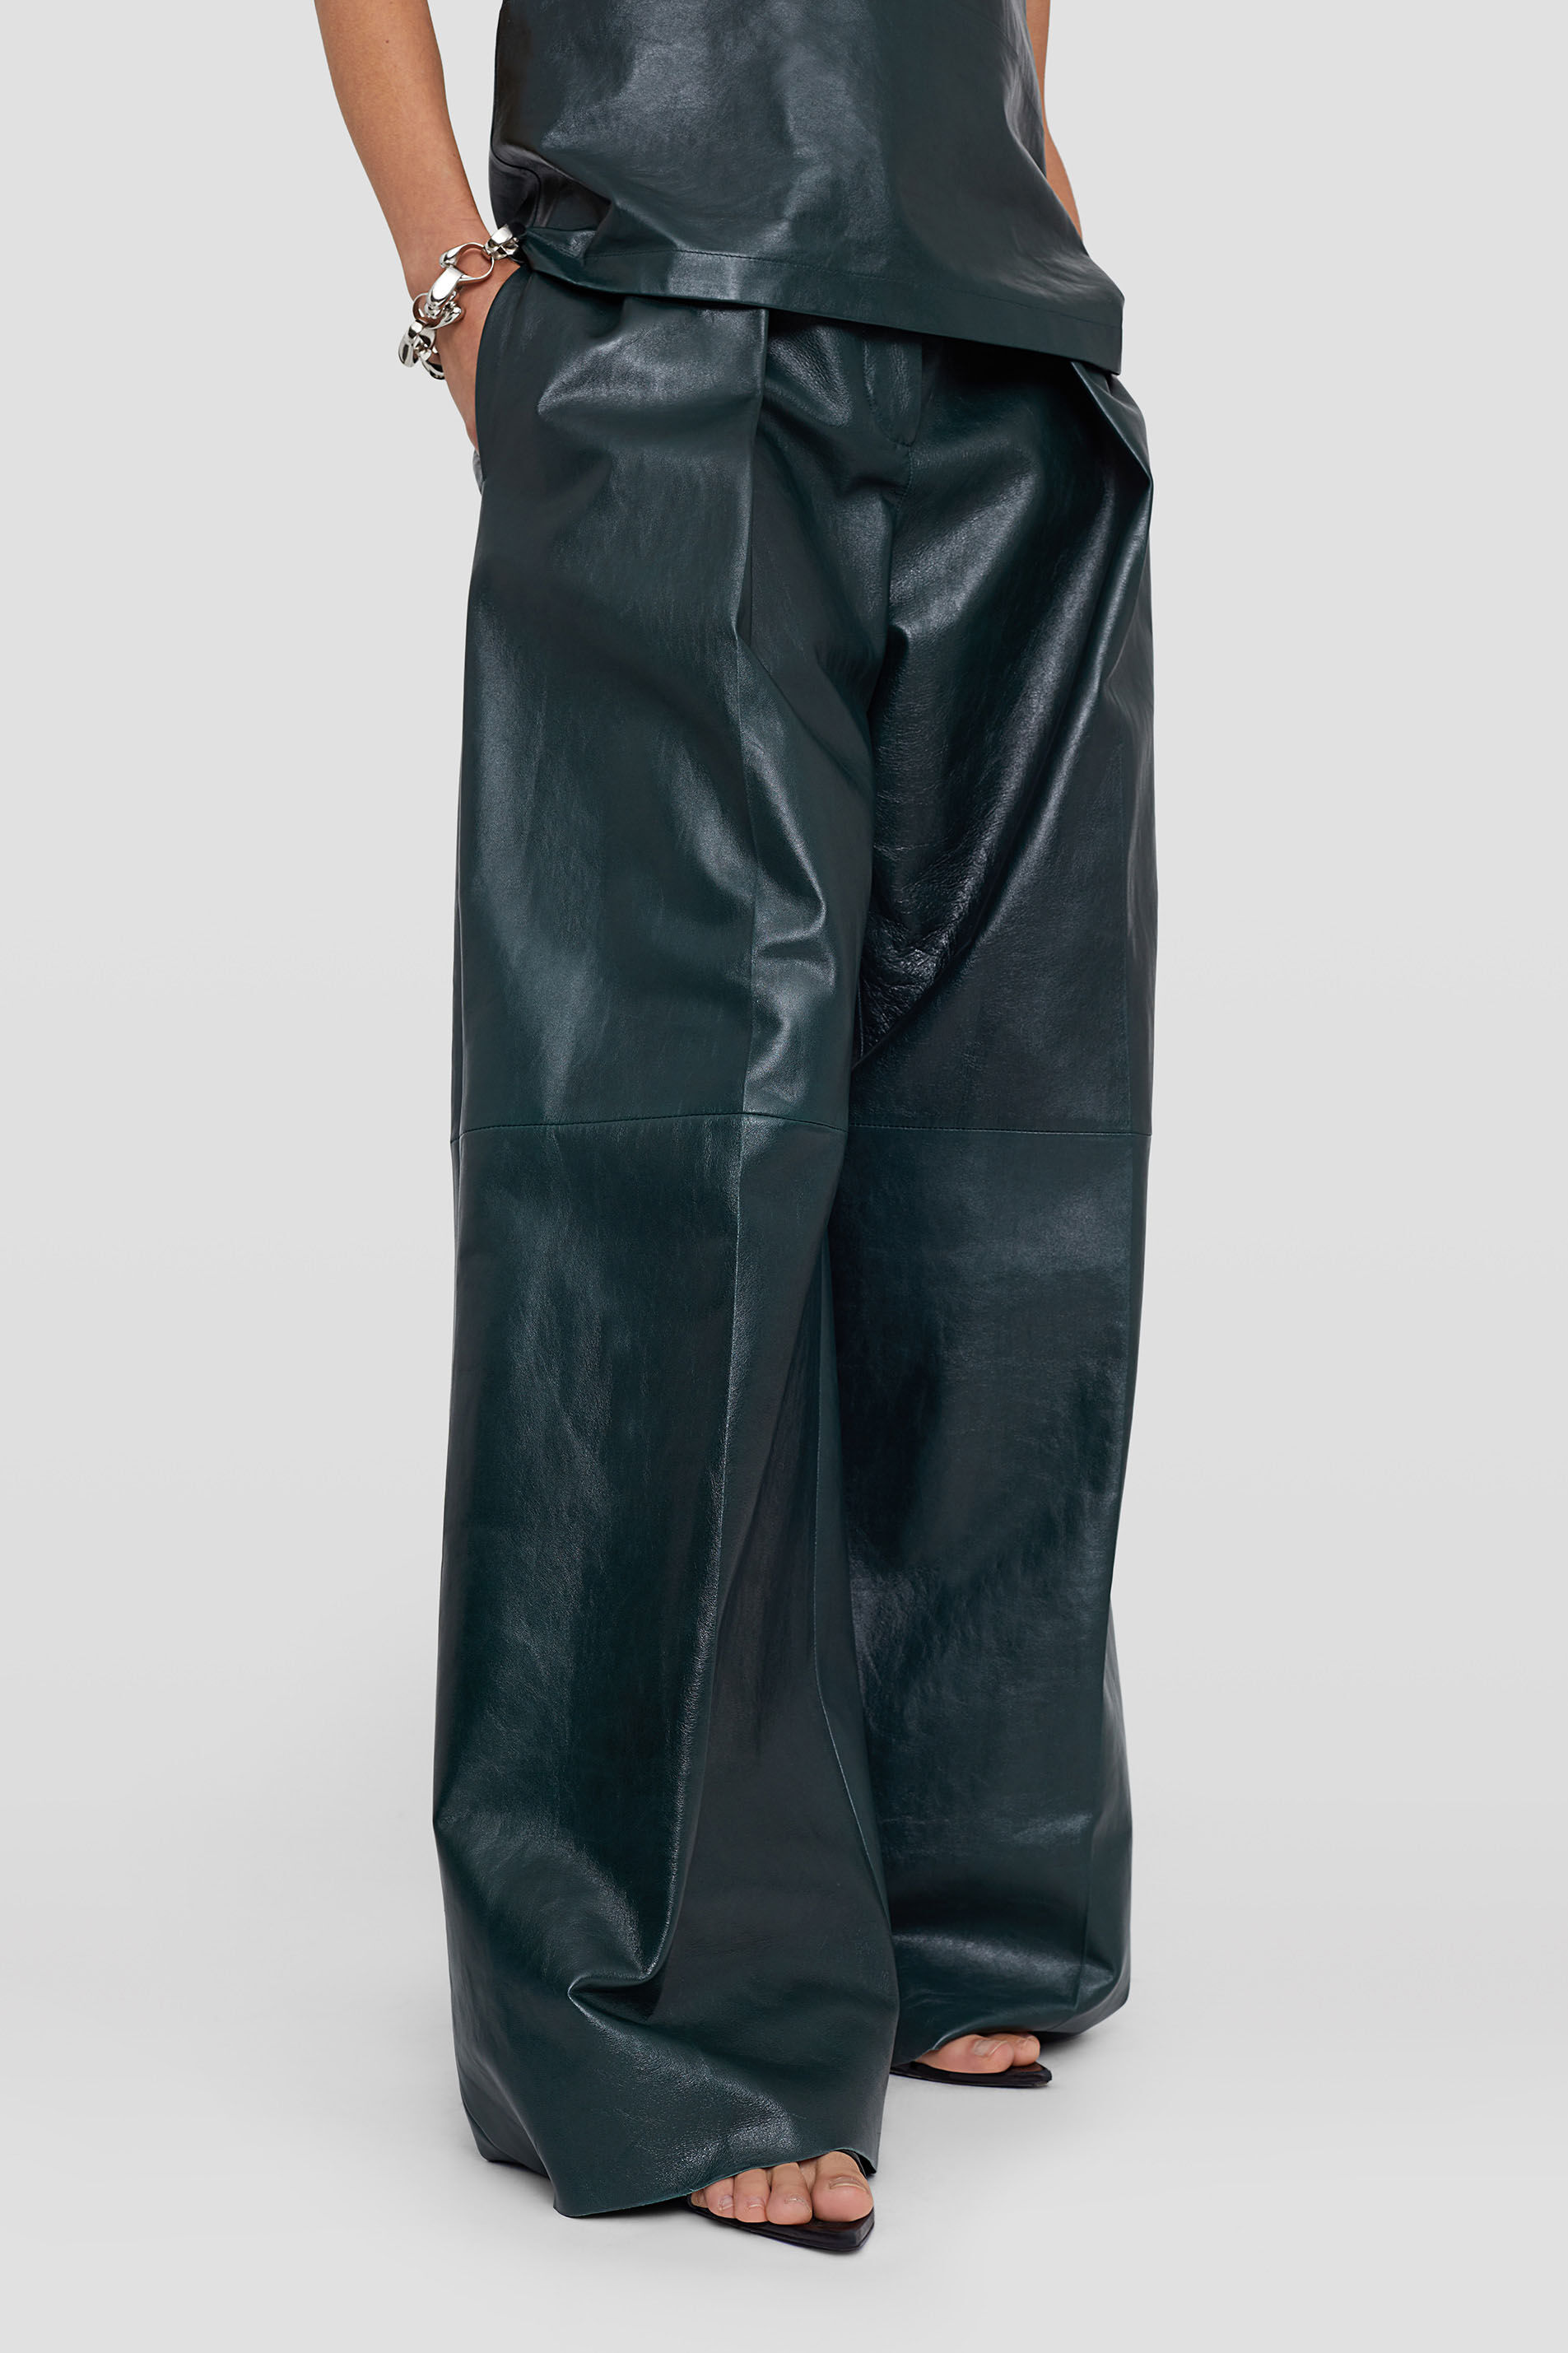 Leather Trousers, dark green, large